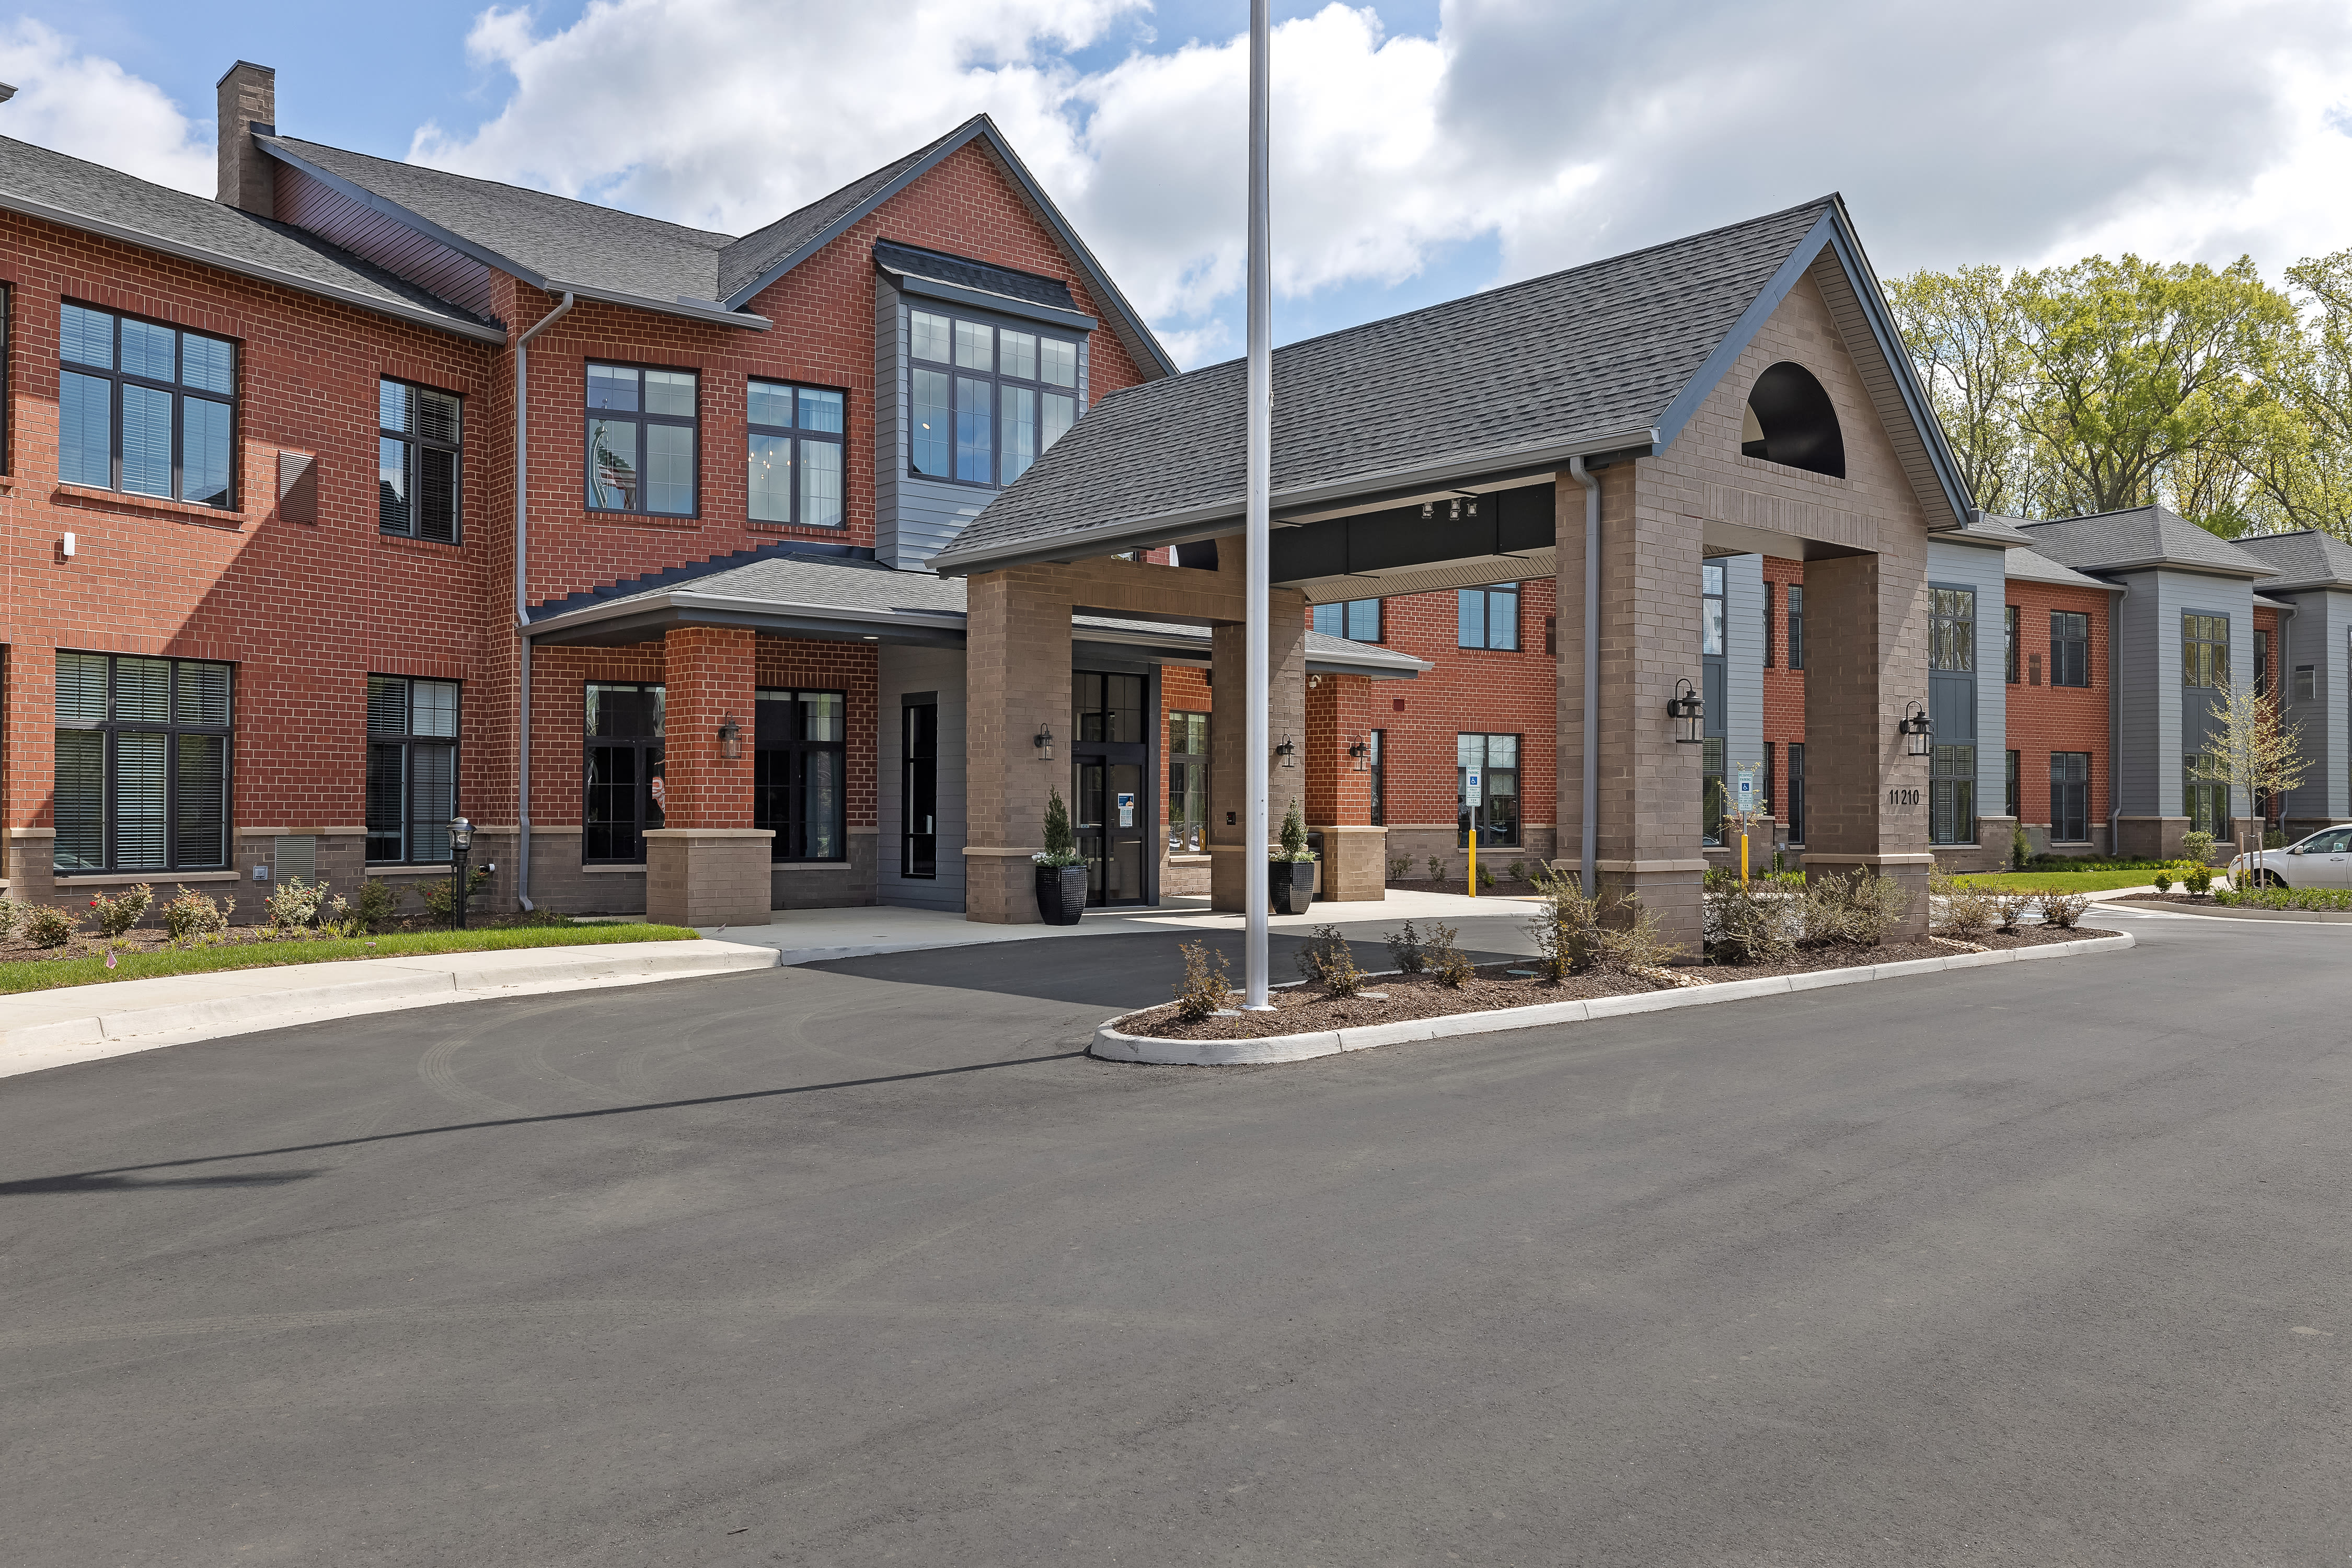 Main entryway and parking lot at Anthology of Midlothian in North Chesterfield, Virginia